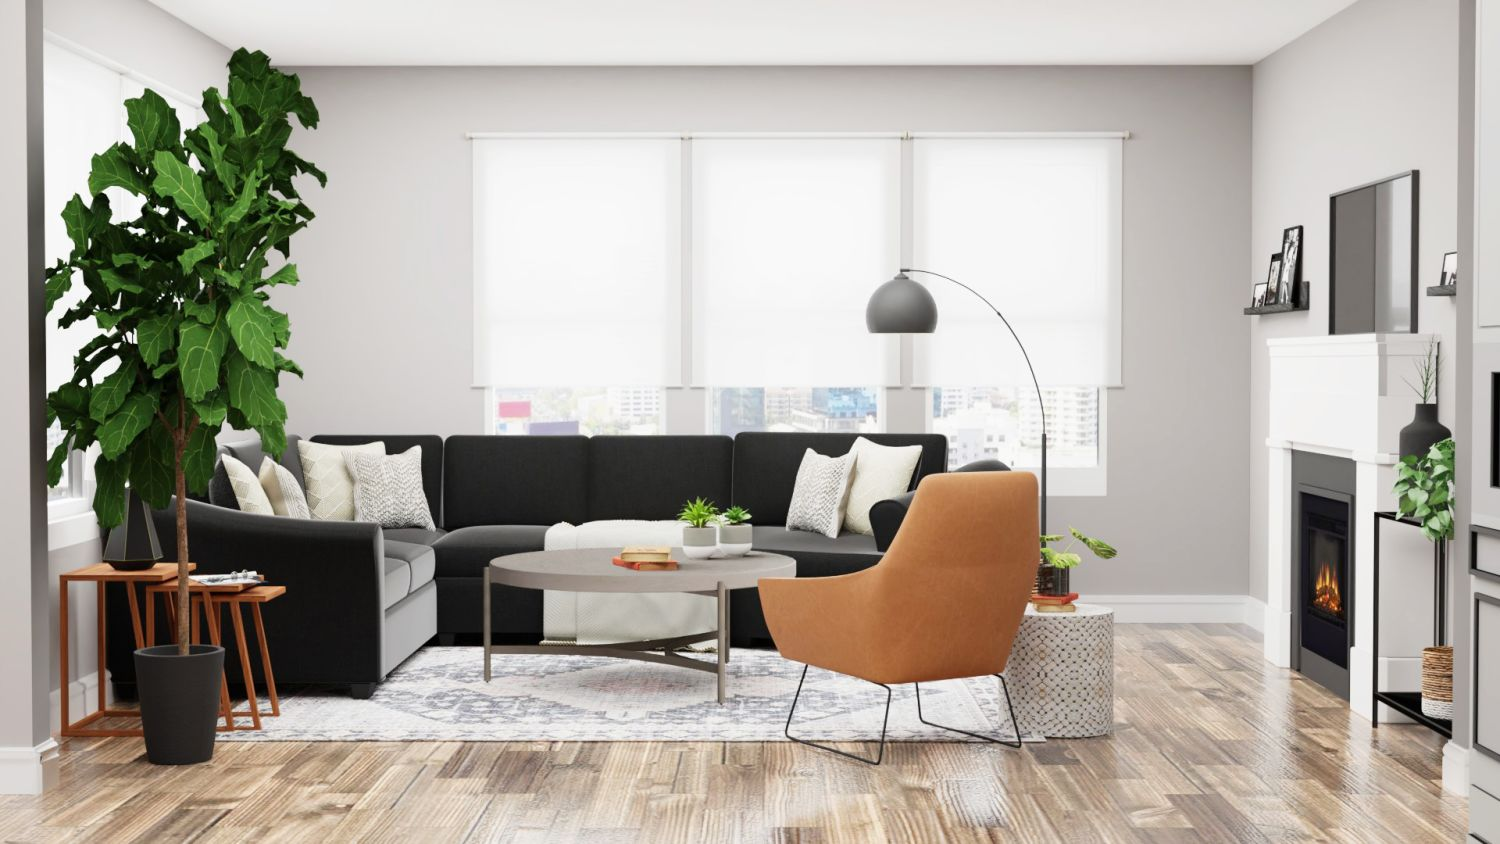 This Mid-Century Modern Living Room is a Minimalist's Dream Design By Spacejoy